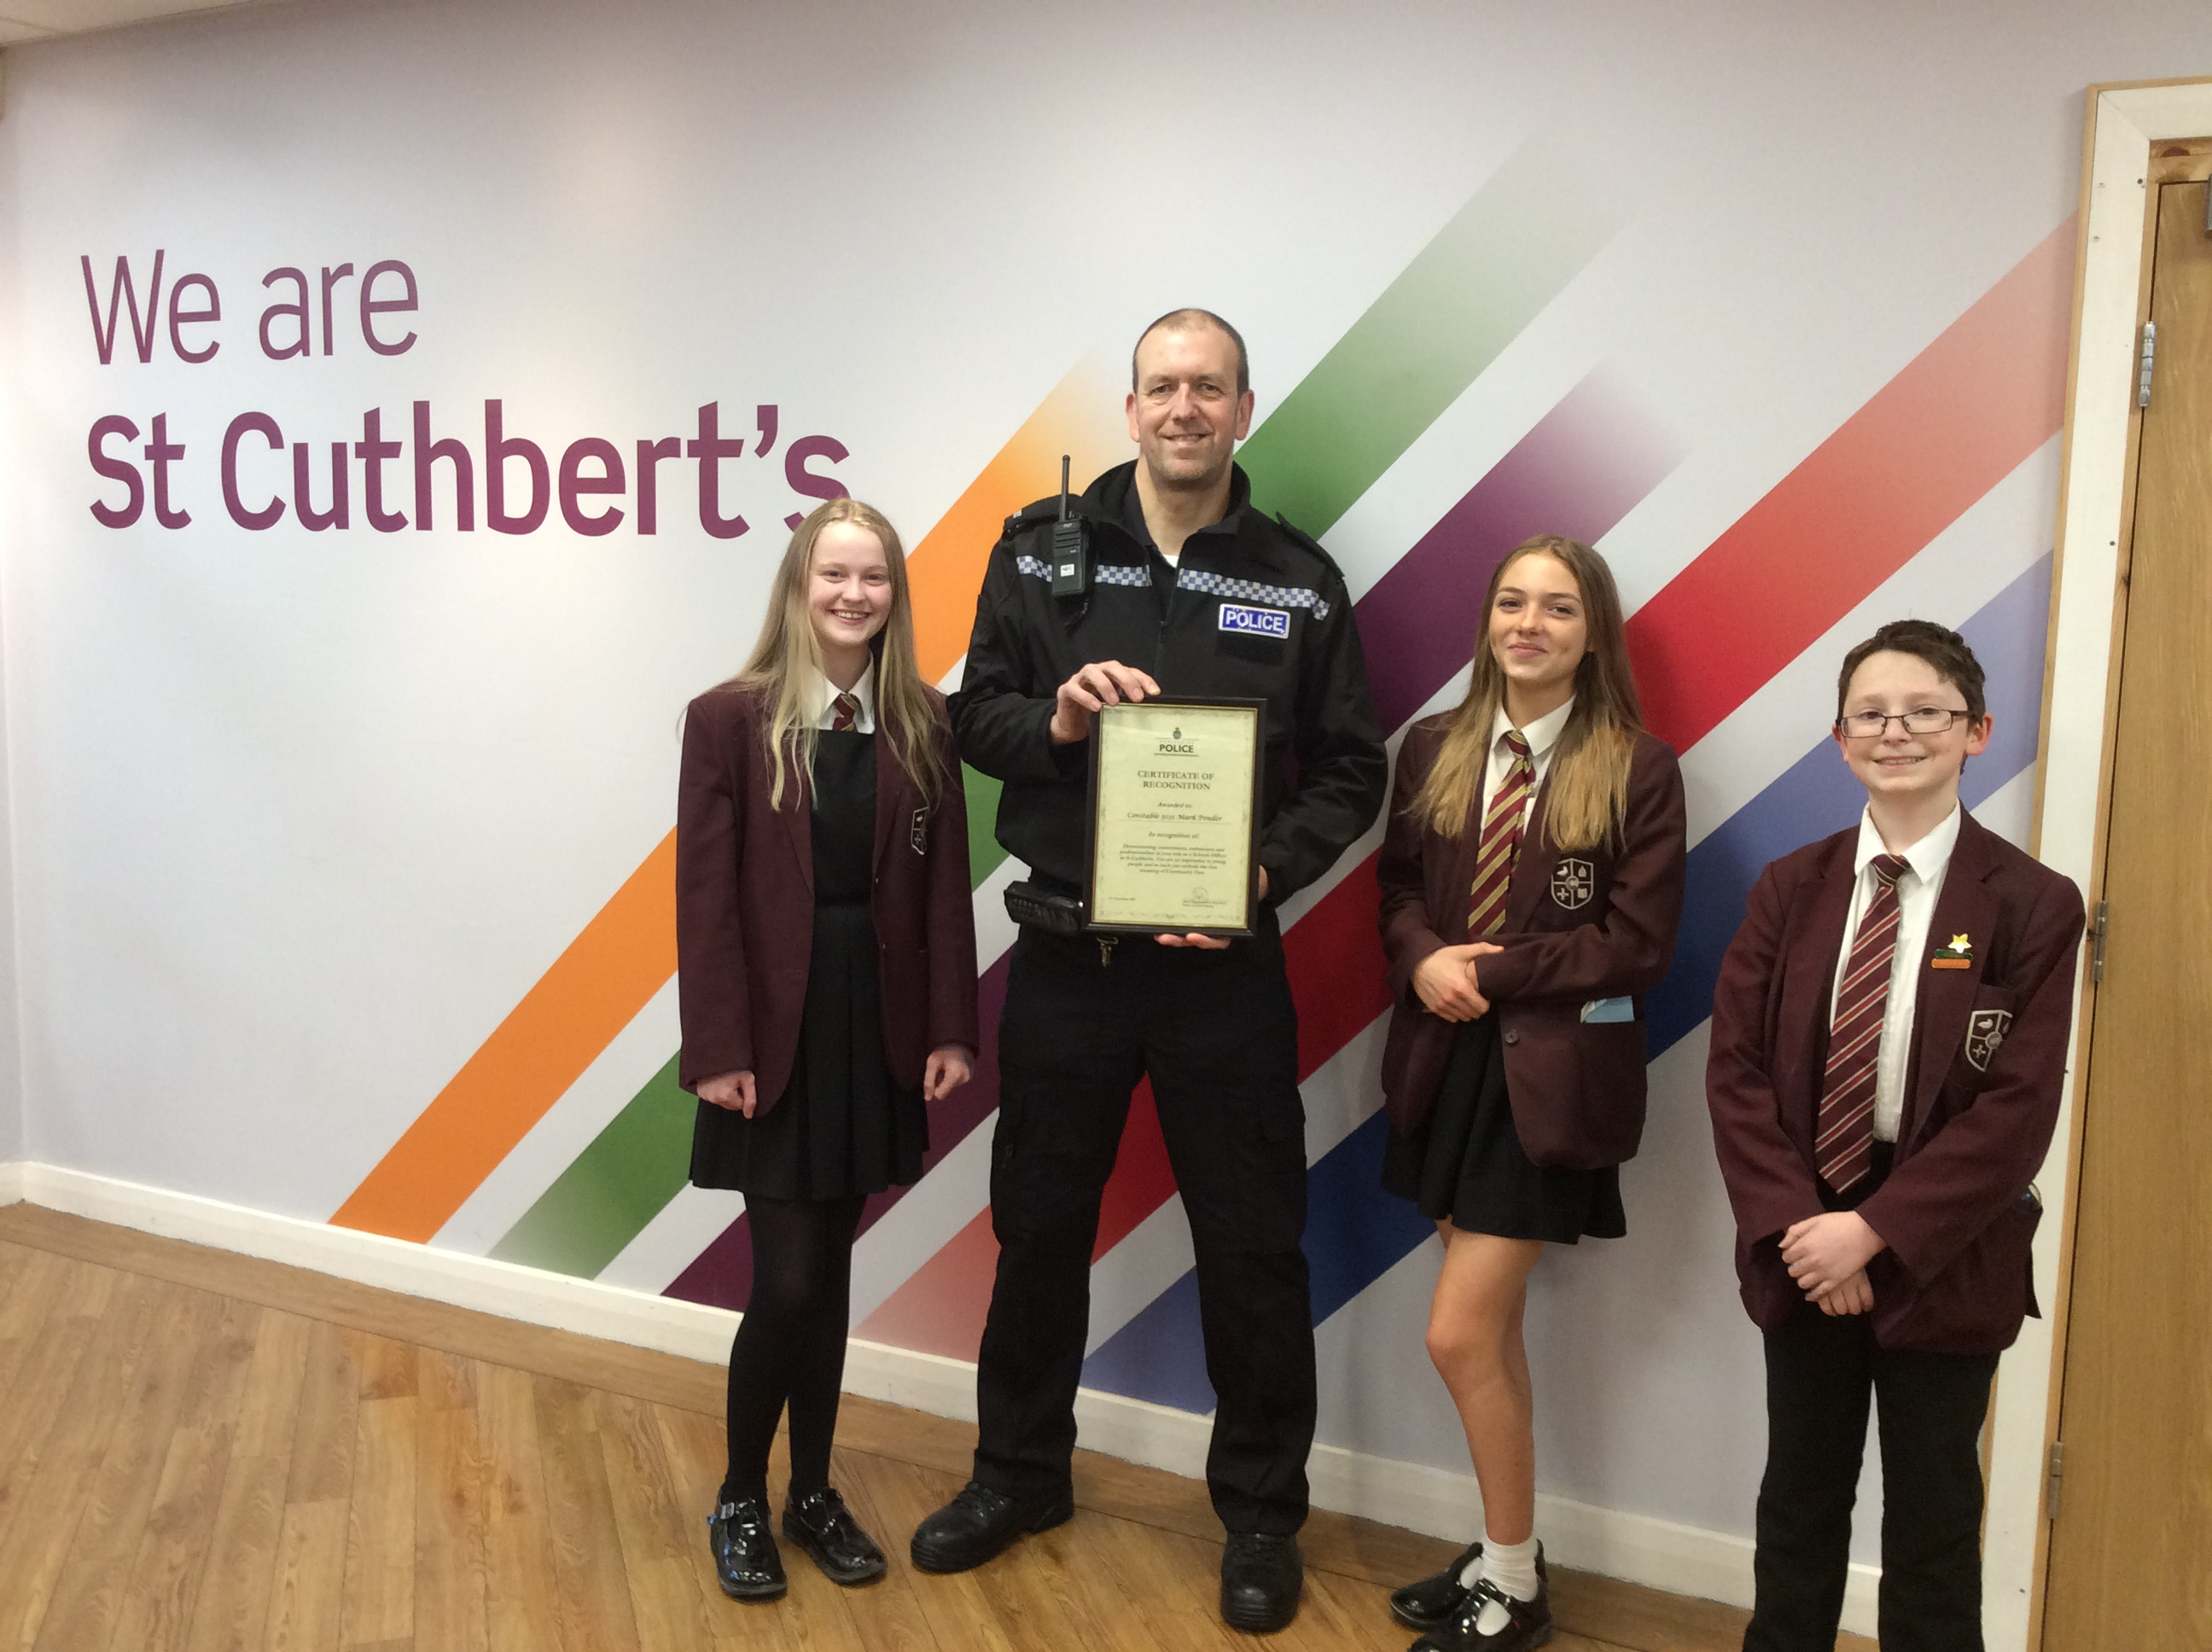 PC Pender receiving his certificate from students Holly, Millie and Leon